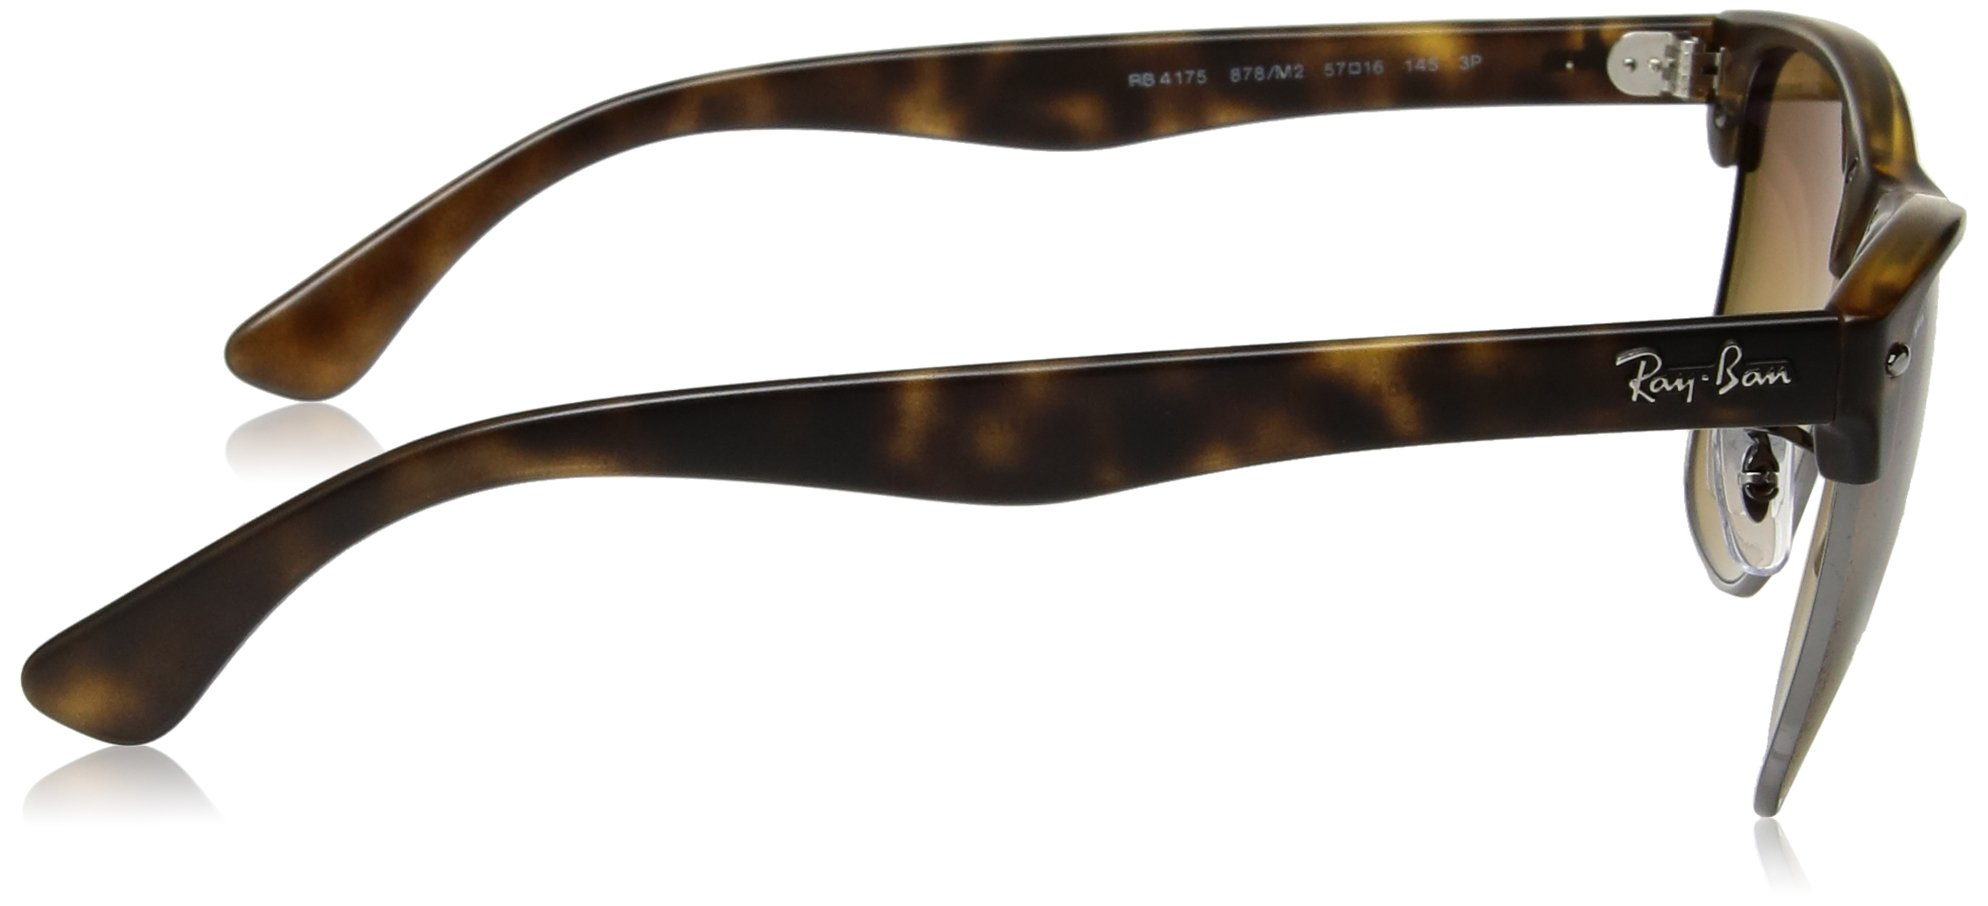 Ray-Ban Men's Clubmaster Oversized Polarized Square Sunglasses, Demi Gloss Havana, 57 mm by Ray-Ban (Image #3)